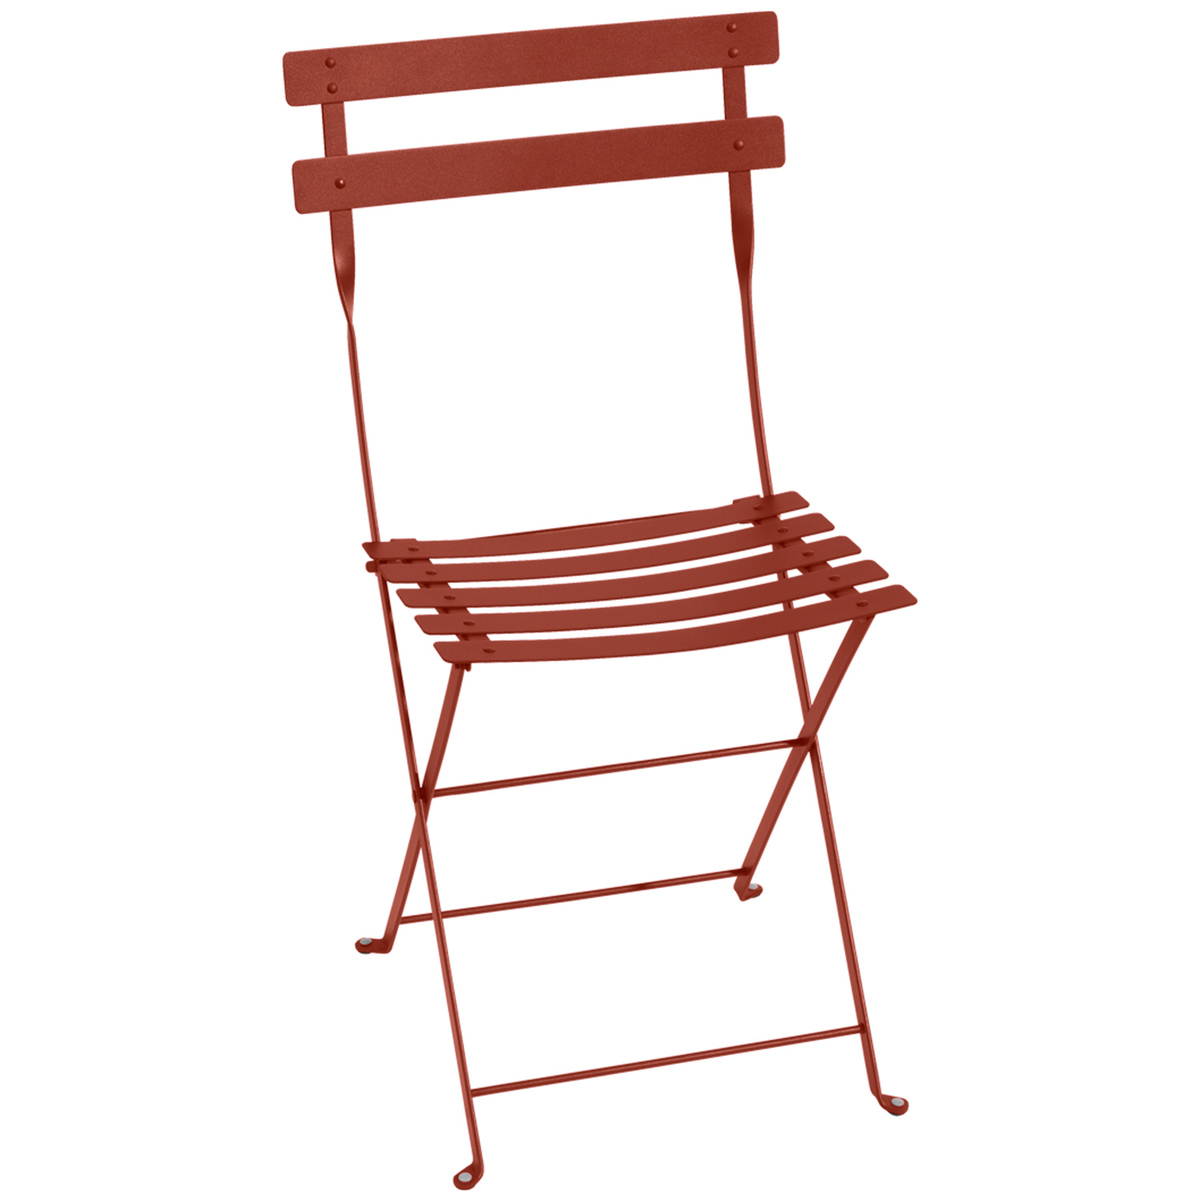 Fermob Bistro Metal chair, red ochra from Fermob